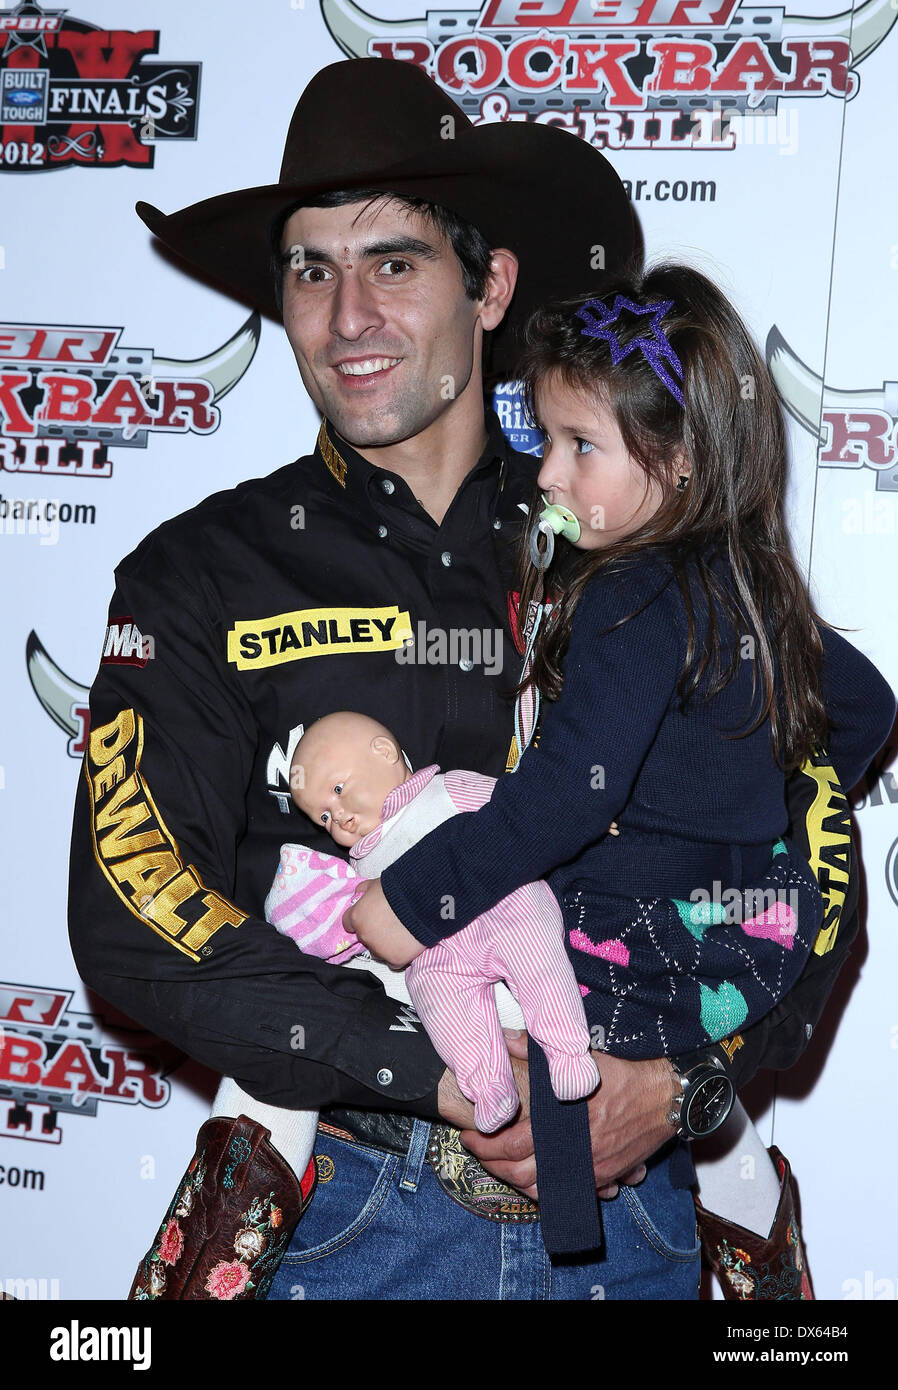 Silvano Alves and daughter Professional Bull Rider Superstars walk the red carpet at PBR Rock Bar inside The Miracle Mile Shops at Planet Hollywood Resort and Casino Las Vegas, Nevada - 26.10.12 Featuring: Silvano Alves and daughter Where: United States When: 26 Oct 2012 - Stock Image